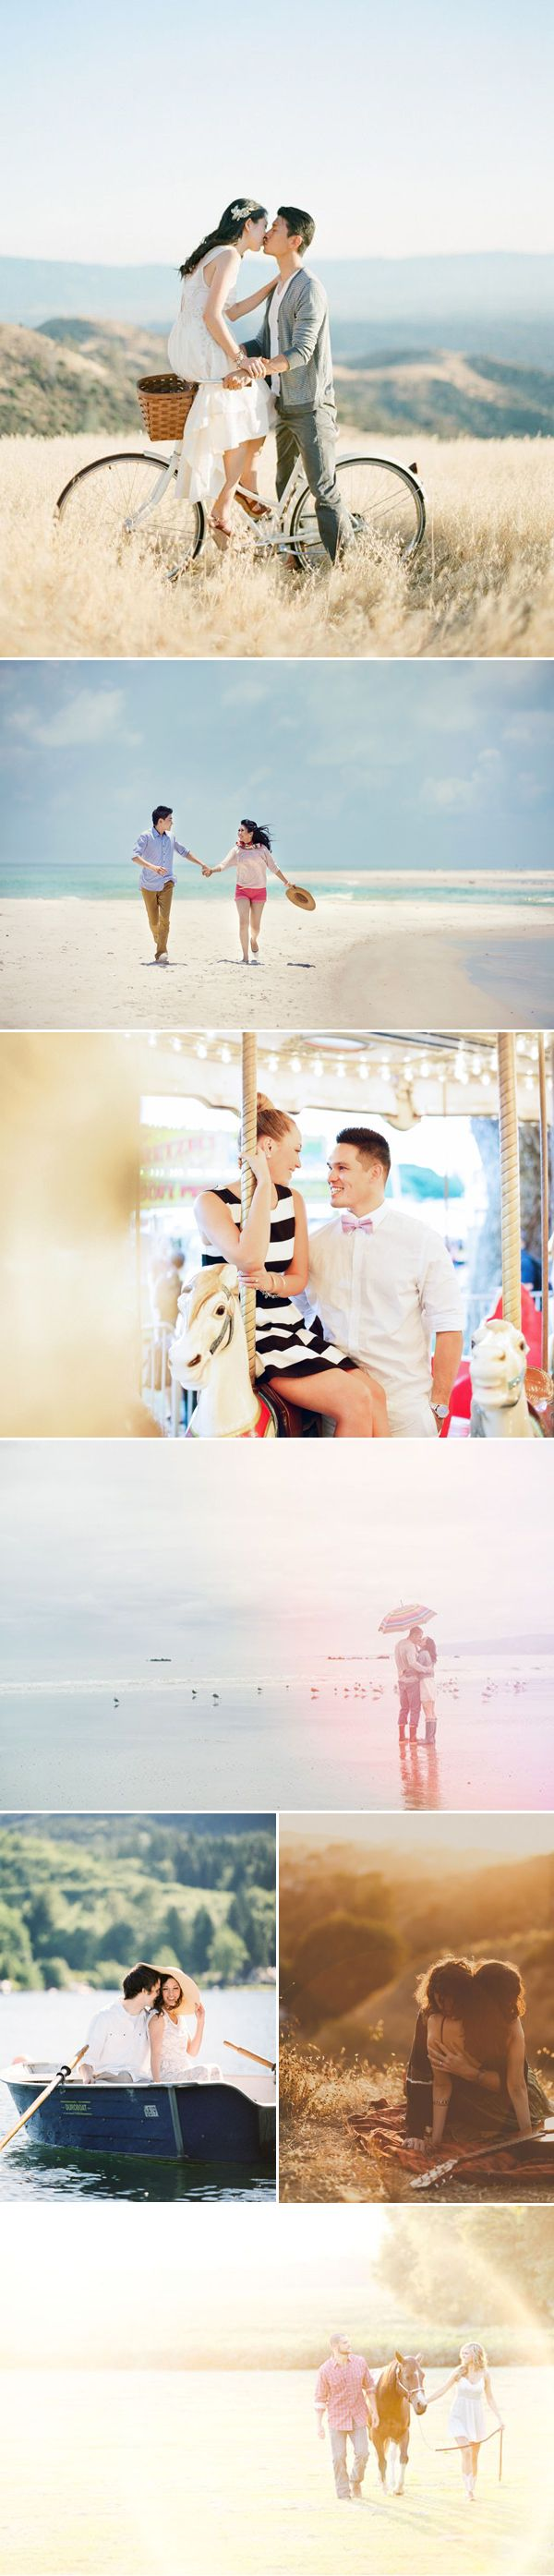 27 Utterly Romantic Natural Lifestyle Engagement Photos